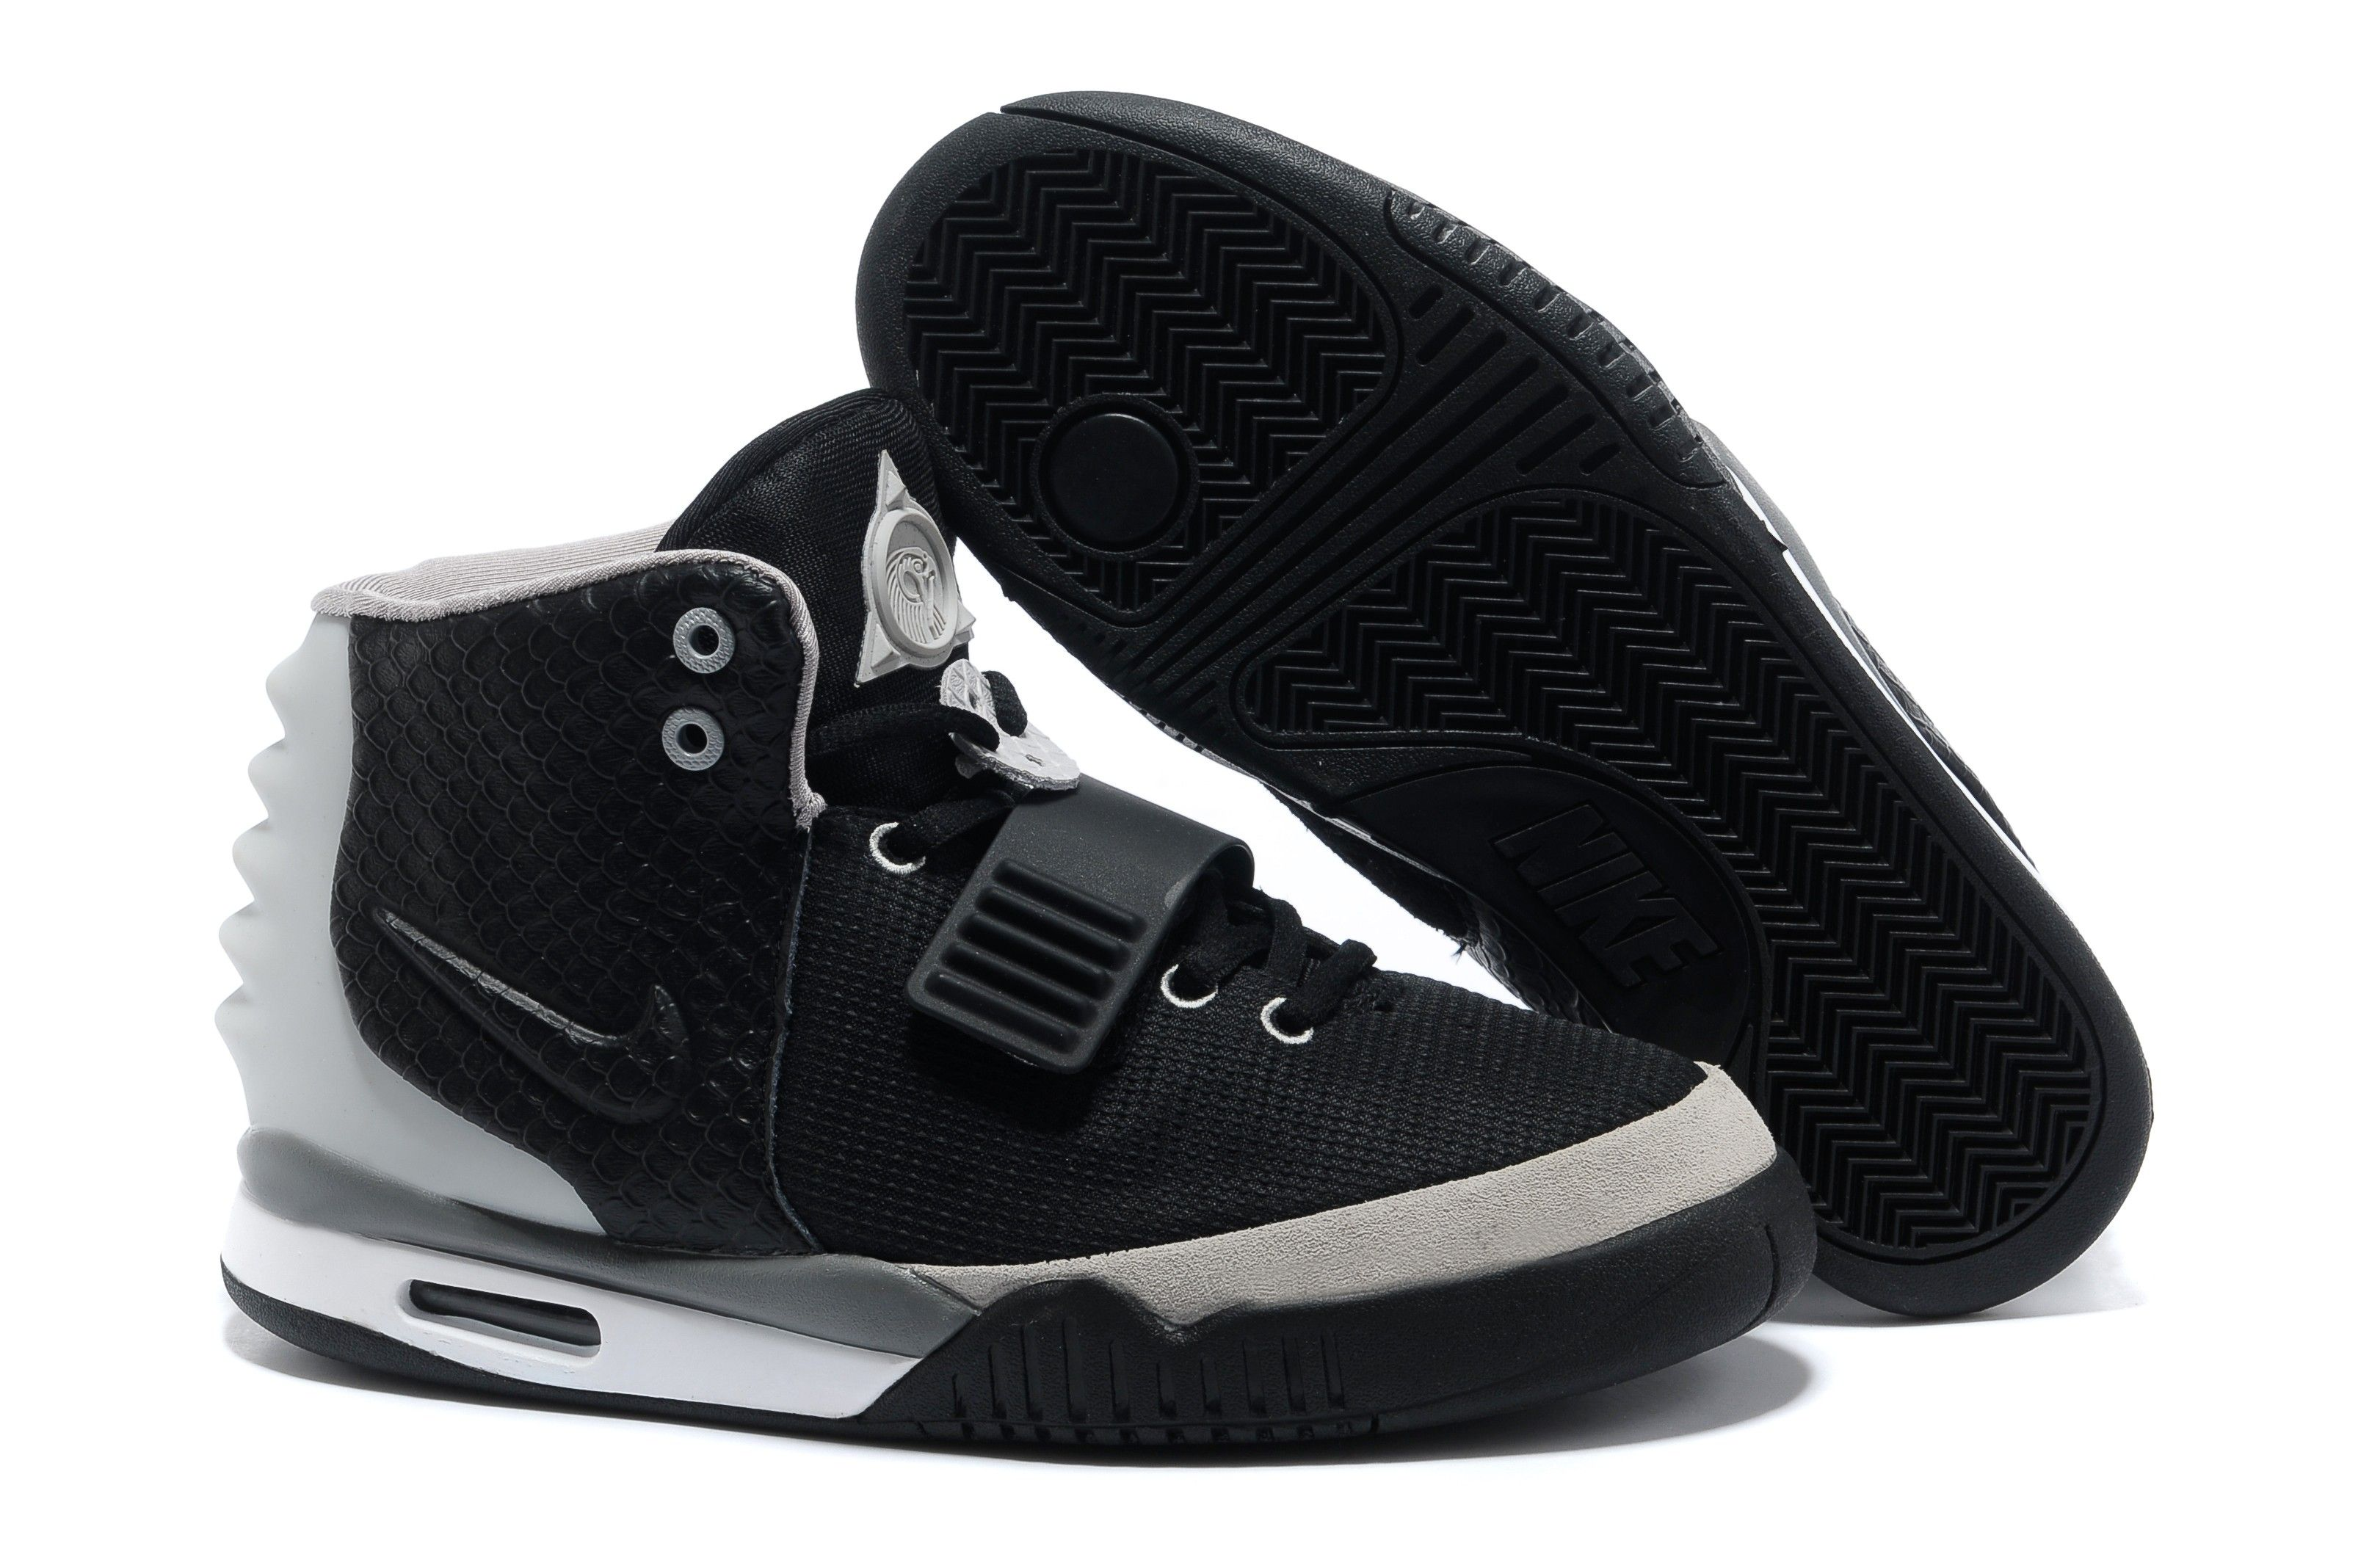 newest 87878 8867b ... promo code for nike air yeezy 2 black silver mens basketball shoes  wholesale nike shoes regular